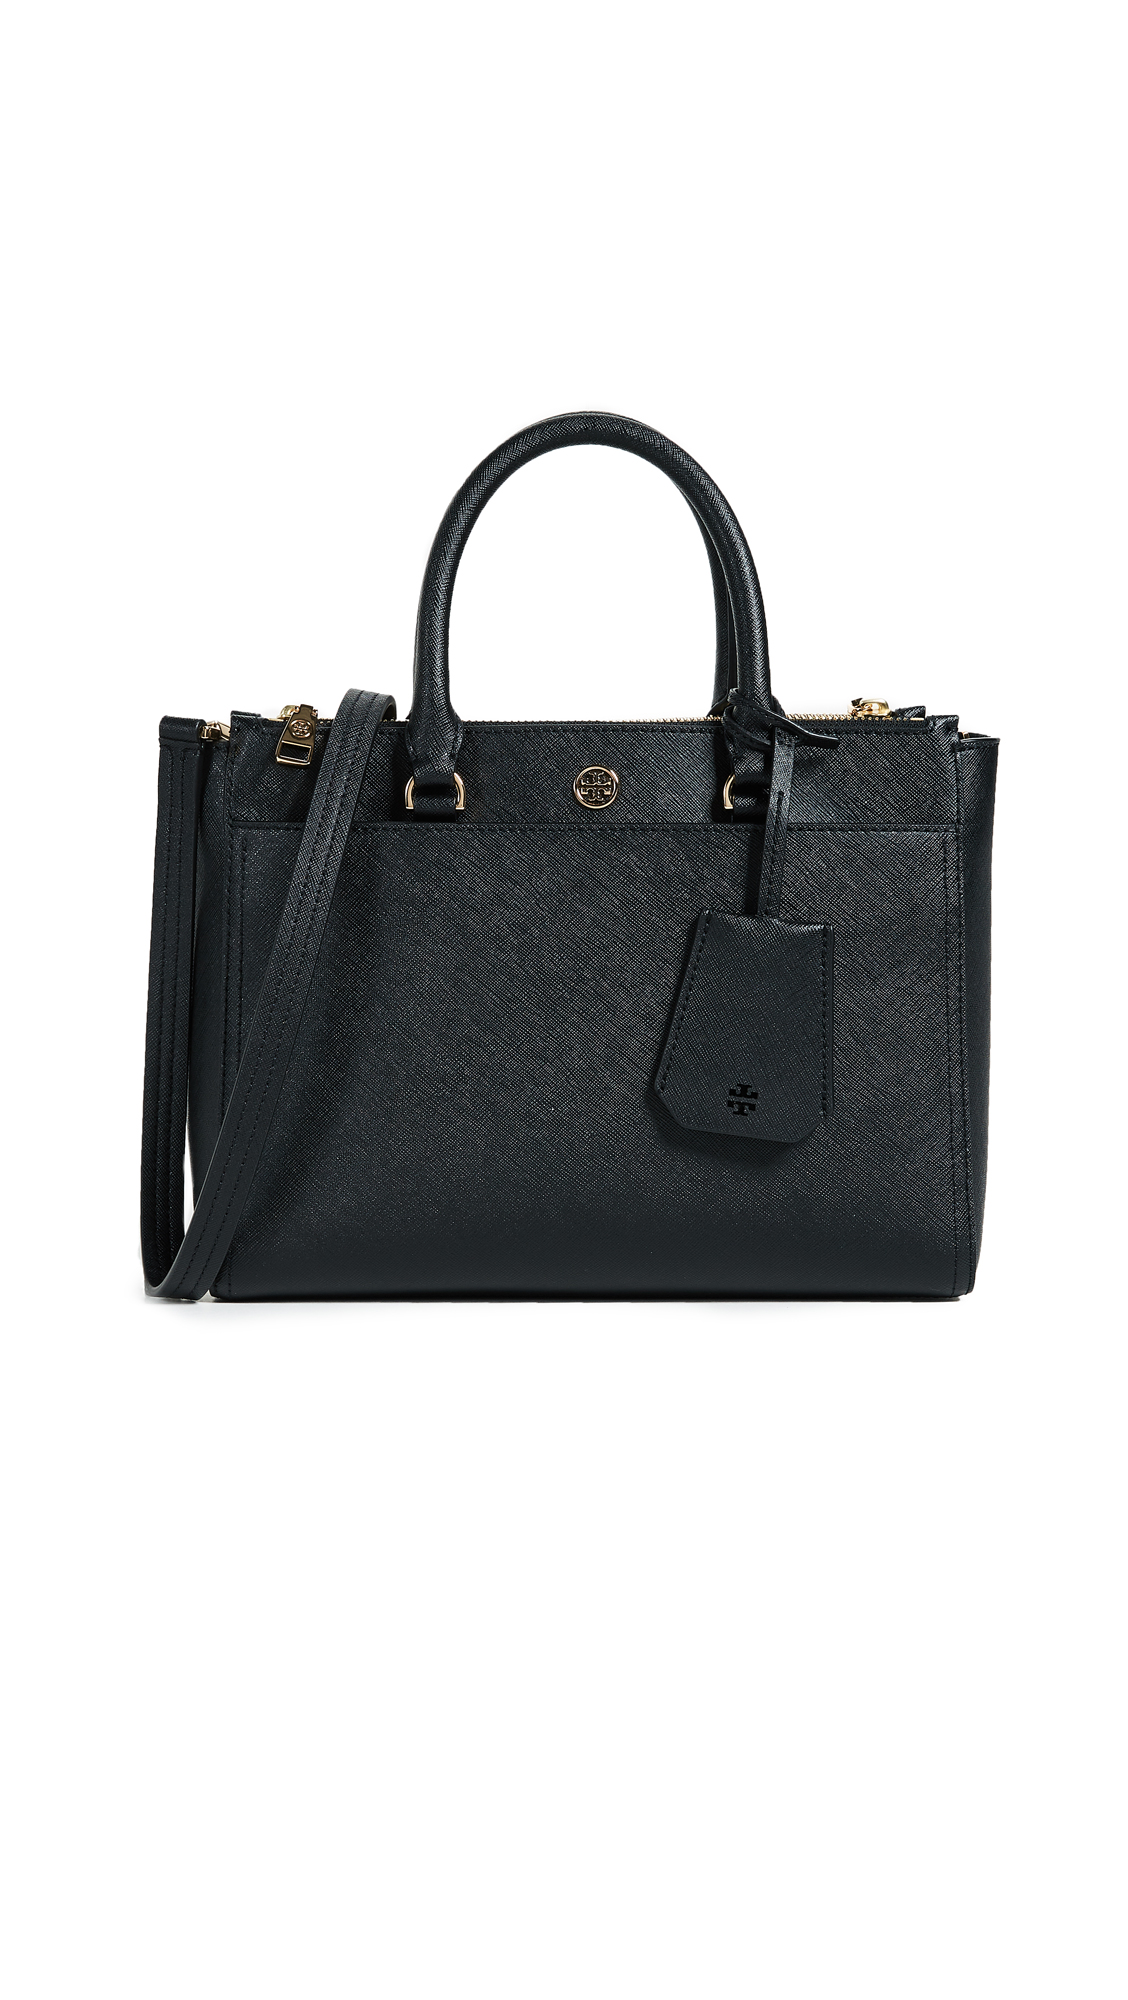 Tory Burch Robinson Small Double Zip Tote - Black/Navy